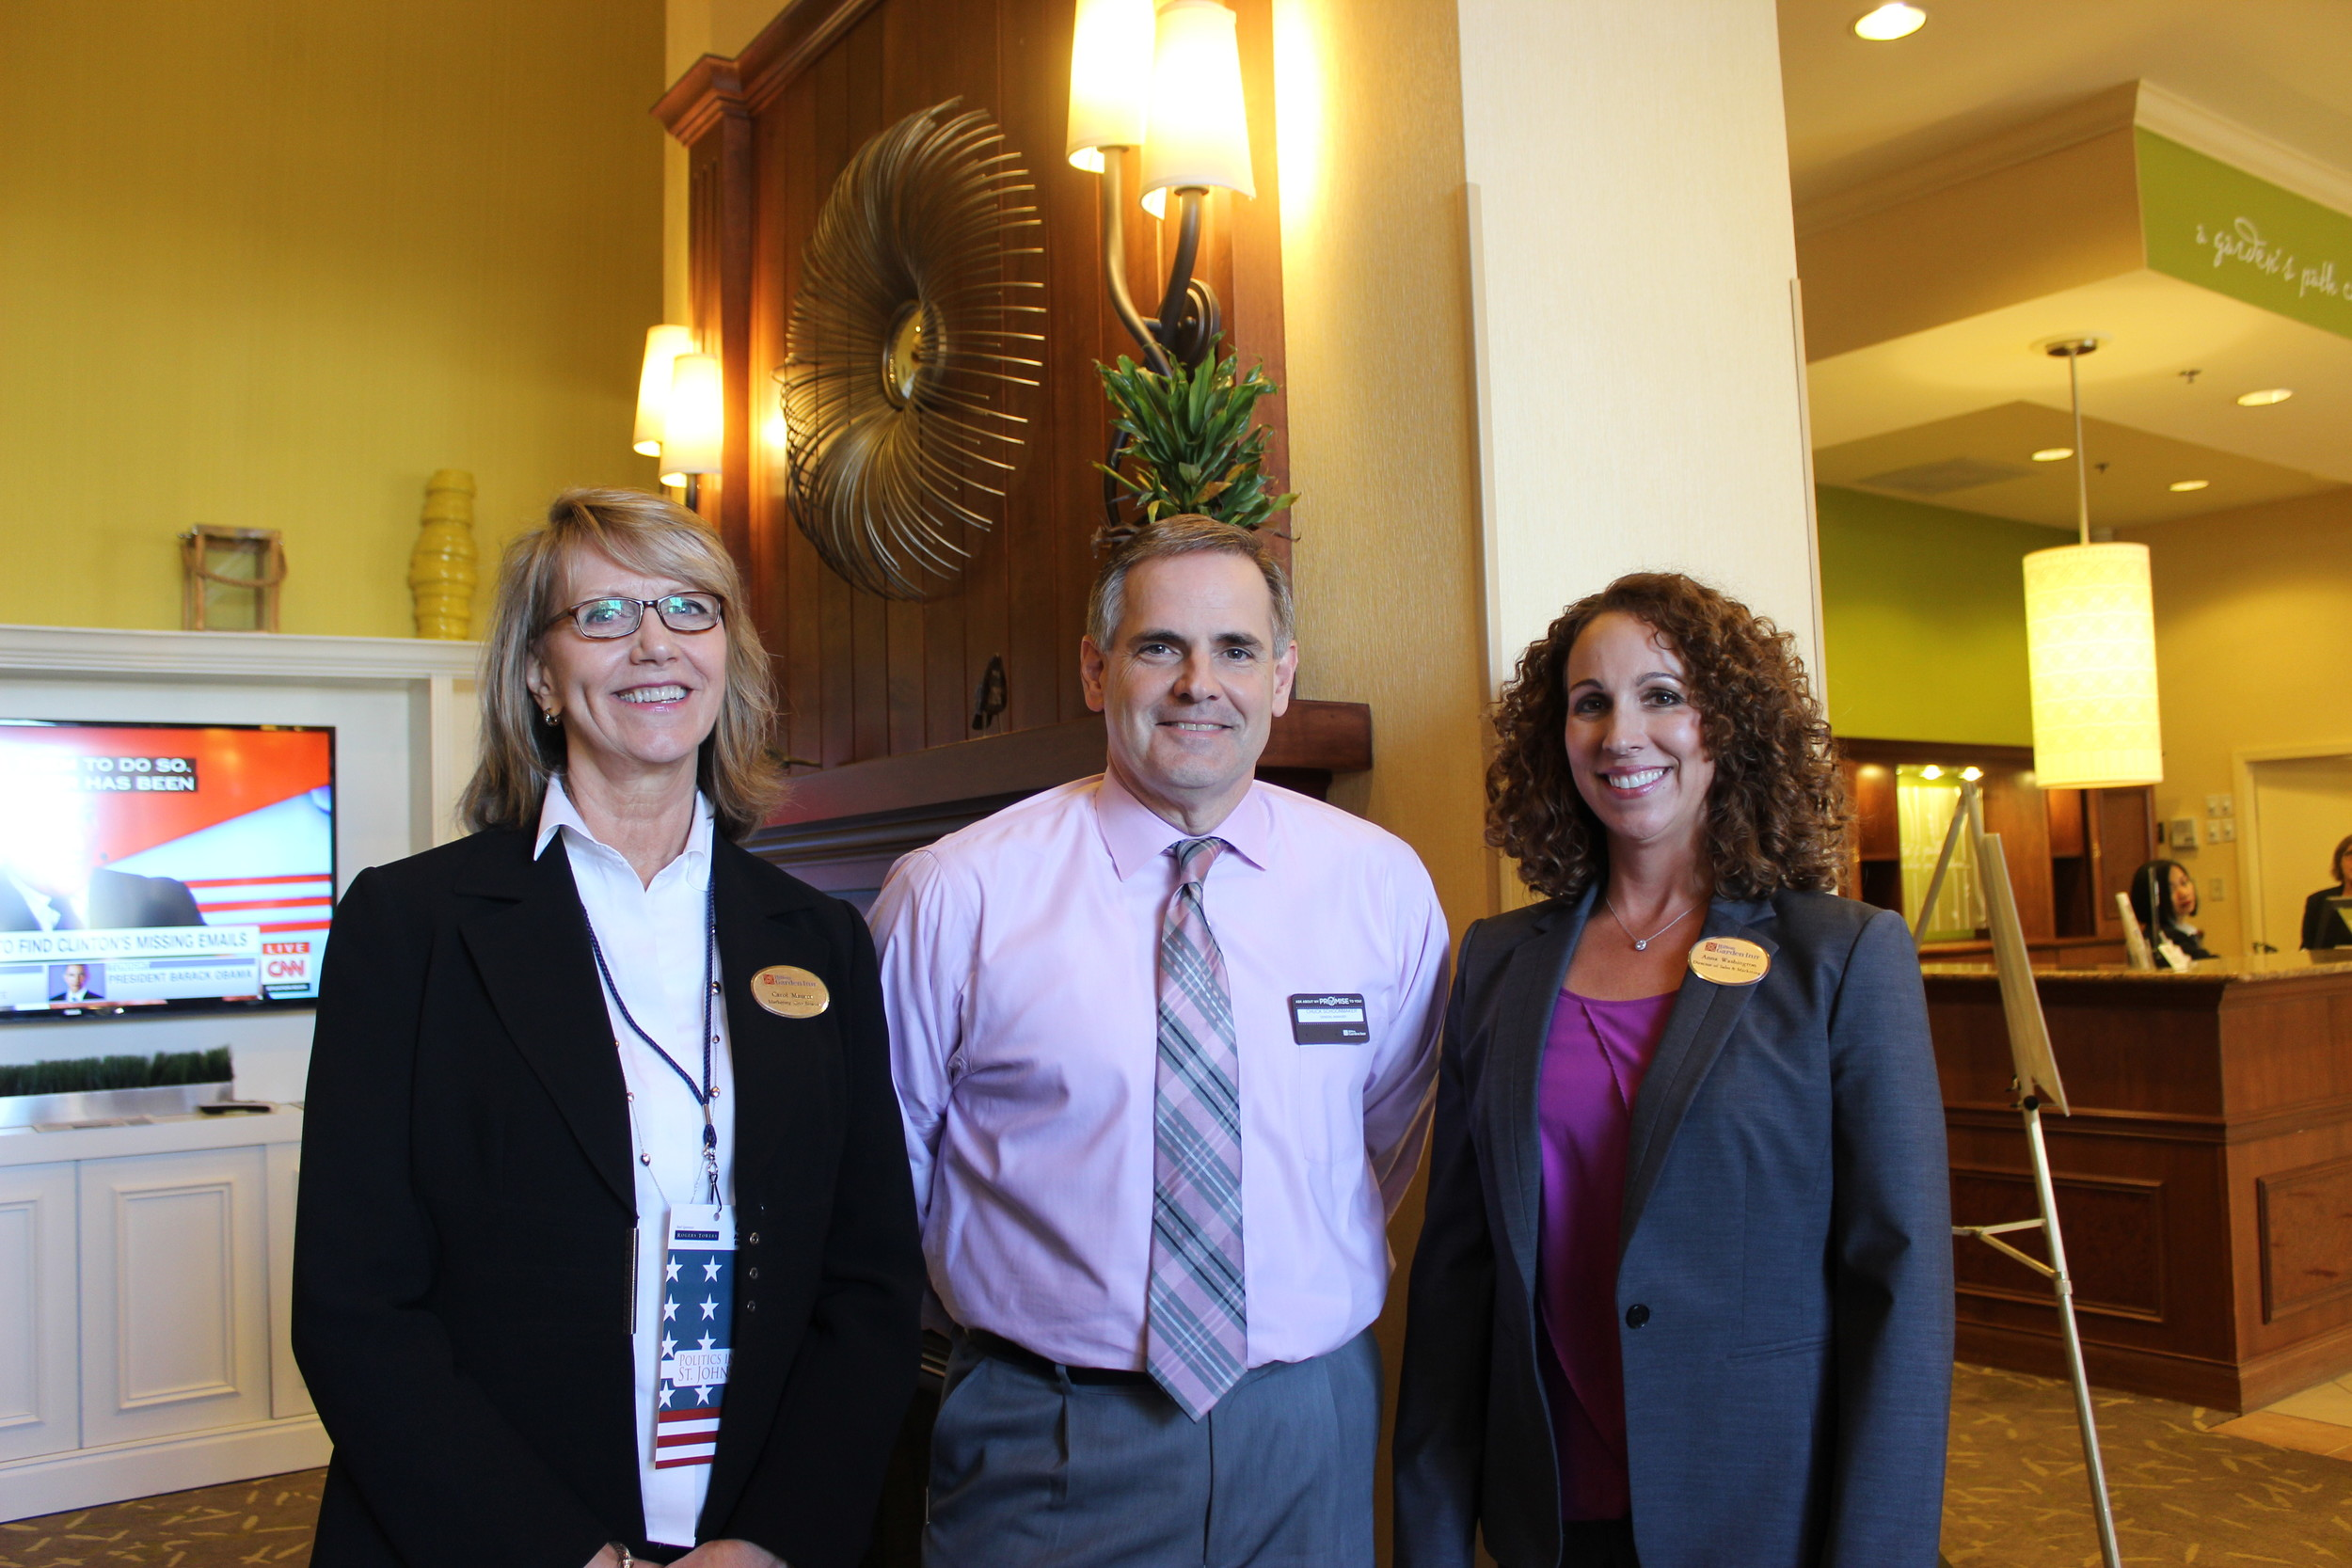 Carol Maurer, Chuck Schoonmaker and Anna Washington of the Hilton Garden Inn